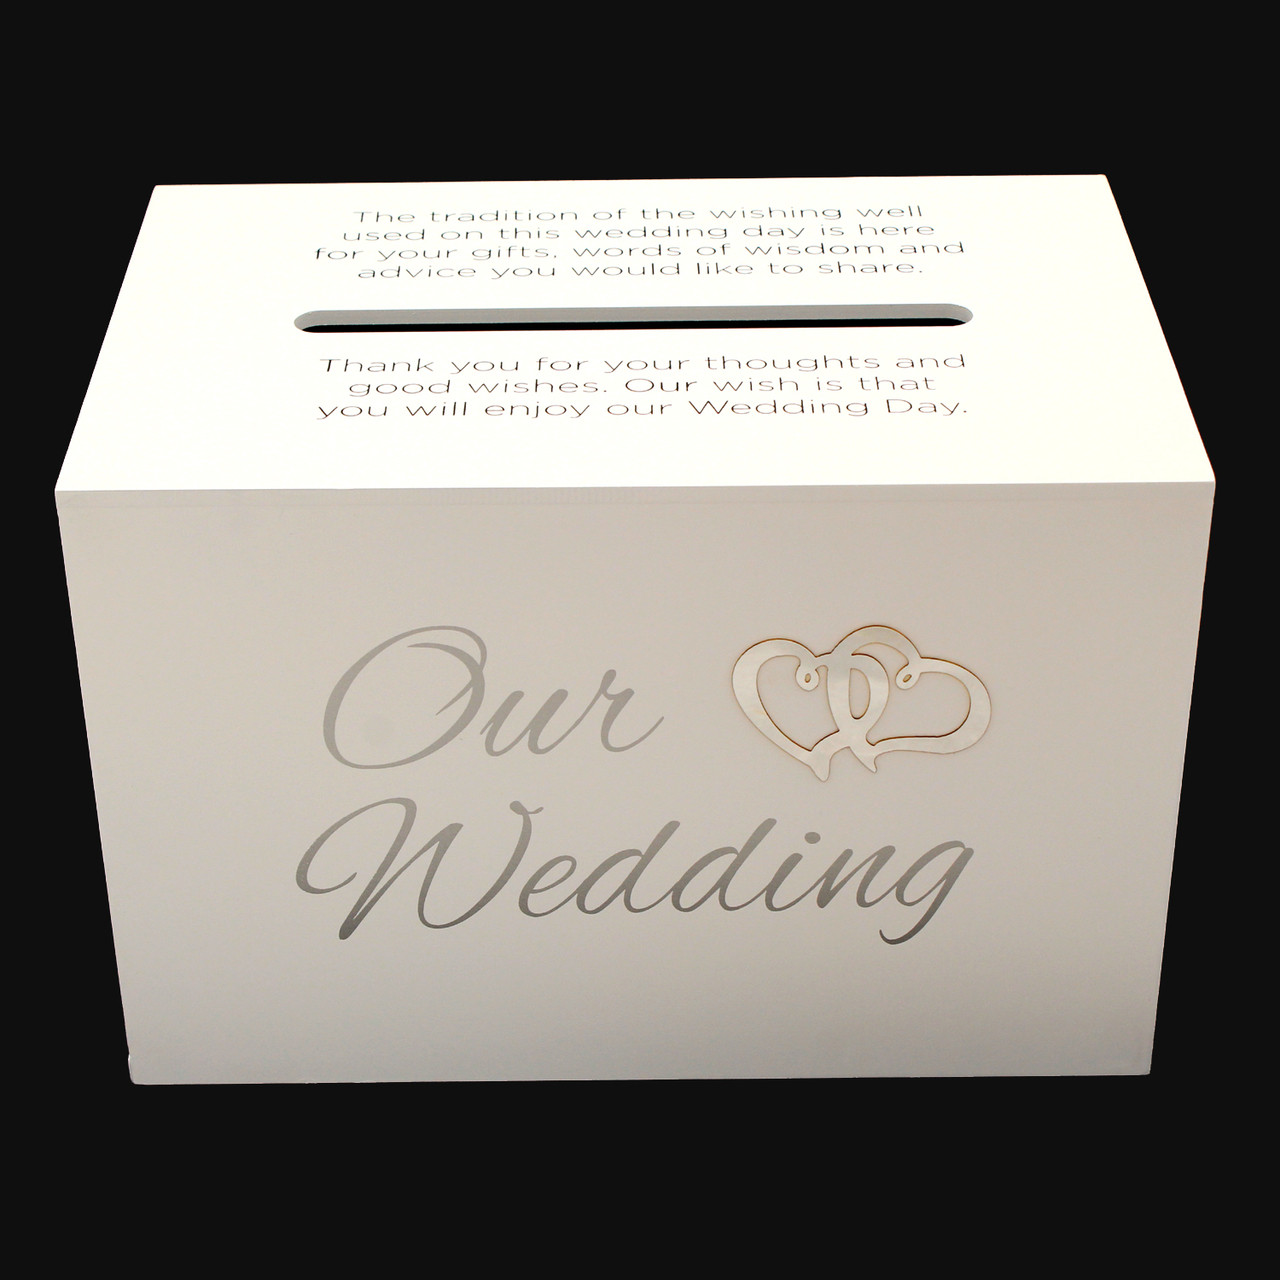 Average Price Of Wedding Gift: Our Wedding Wishing Well Card Holder